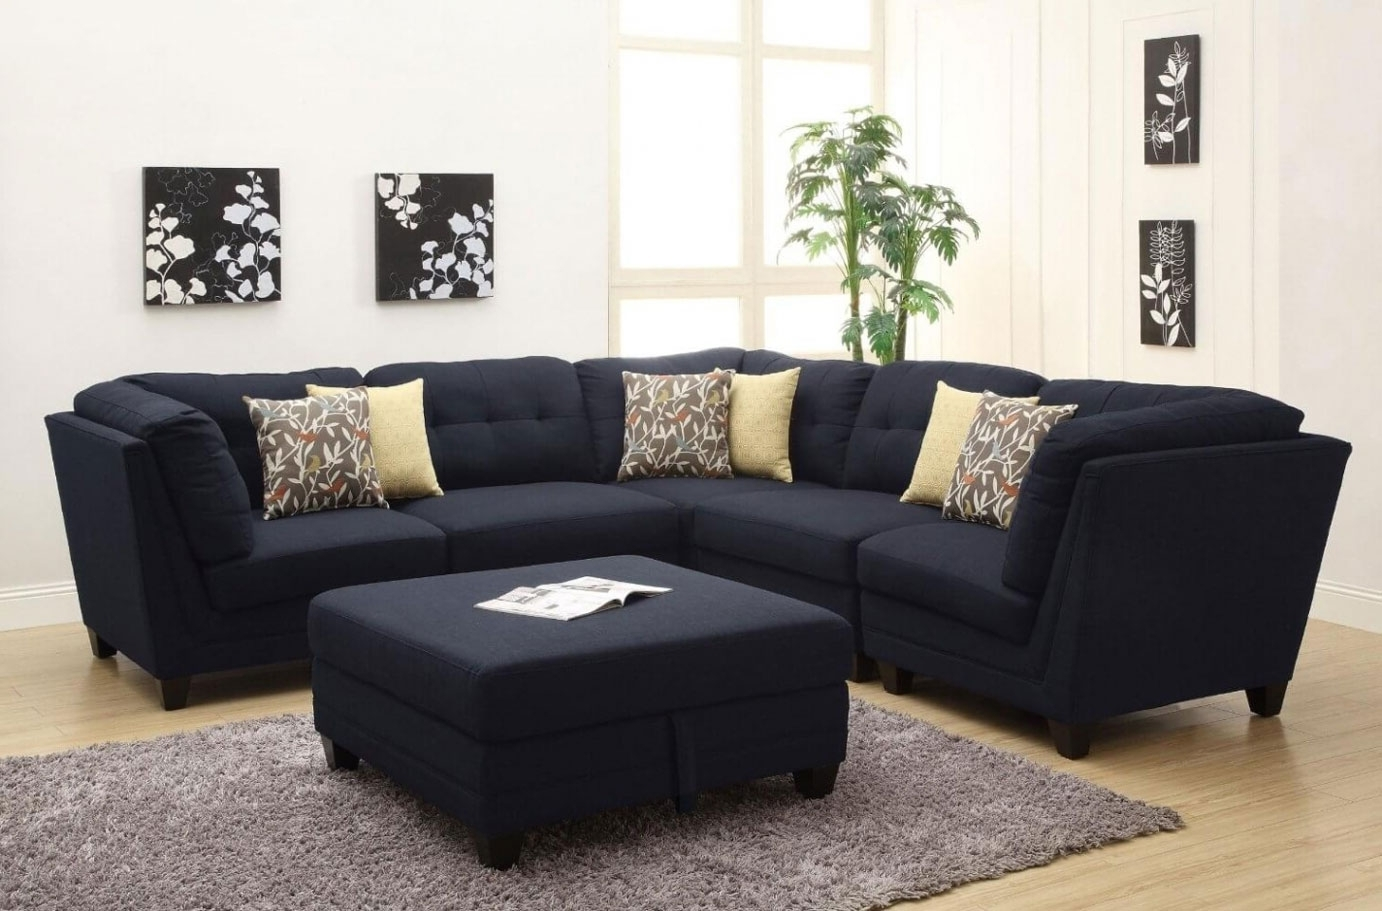 Sectional Sofa: Most Recommended Sectional Sofas Under $1000 Cheap With Regard To Durham Region Sectional Sofas (View 4 of 10)